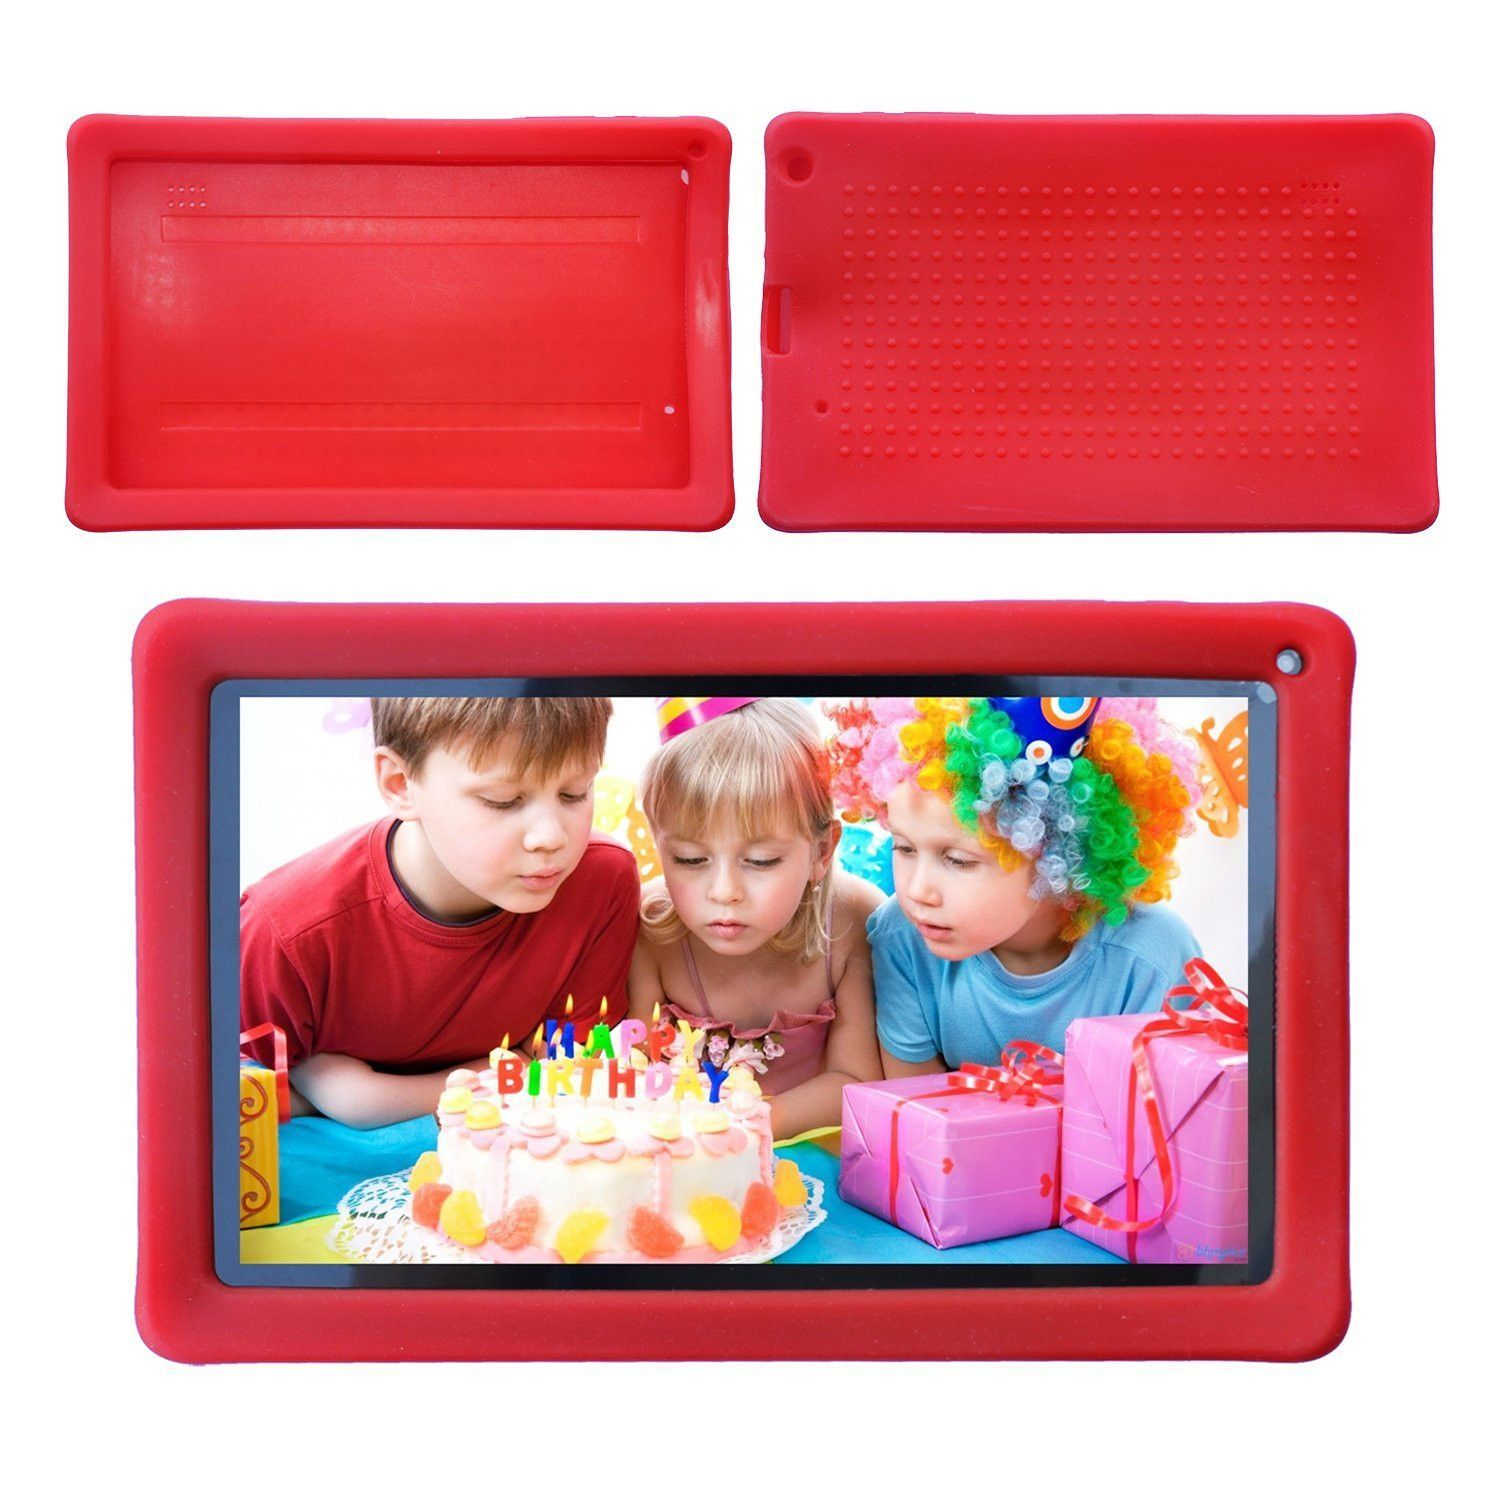 Contixo Defender Series Silicone 9 inch Android Tablet